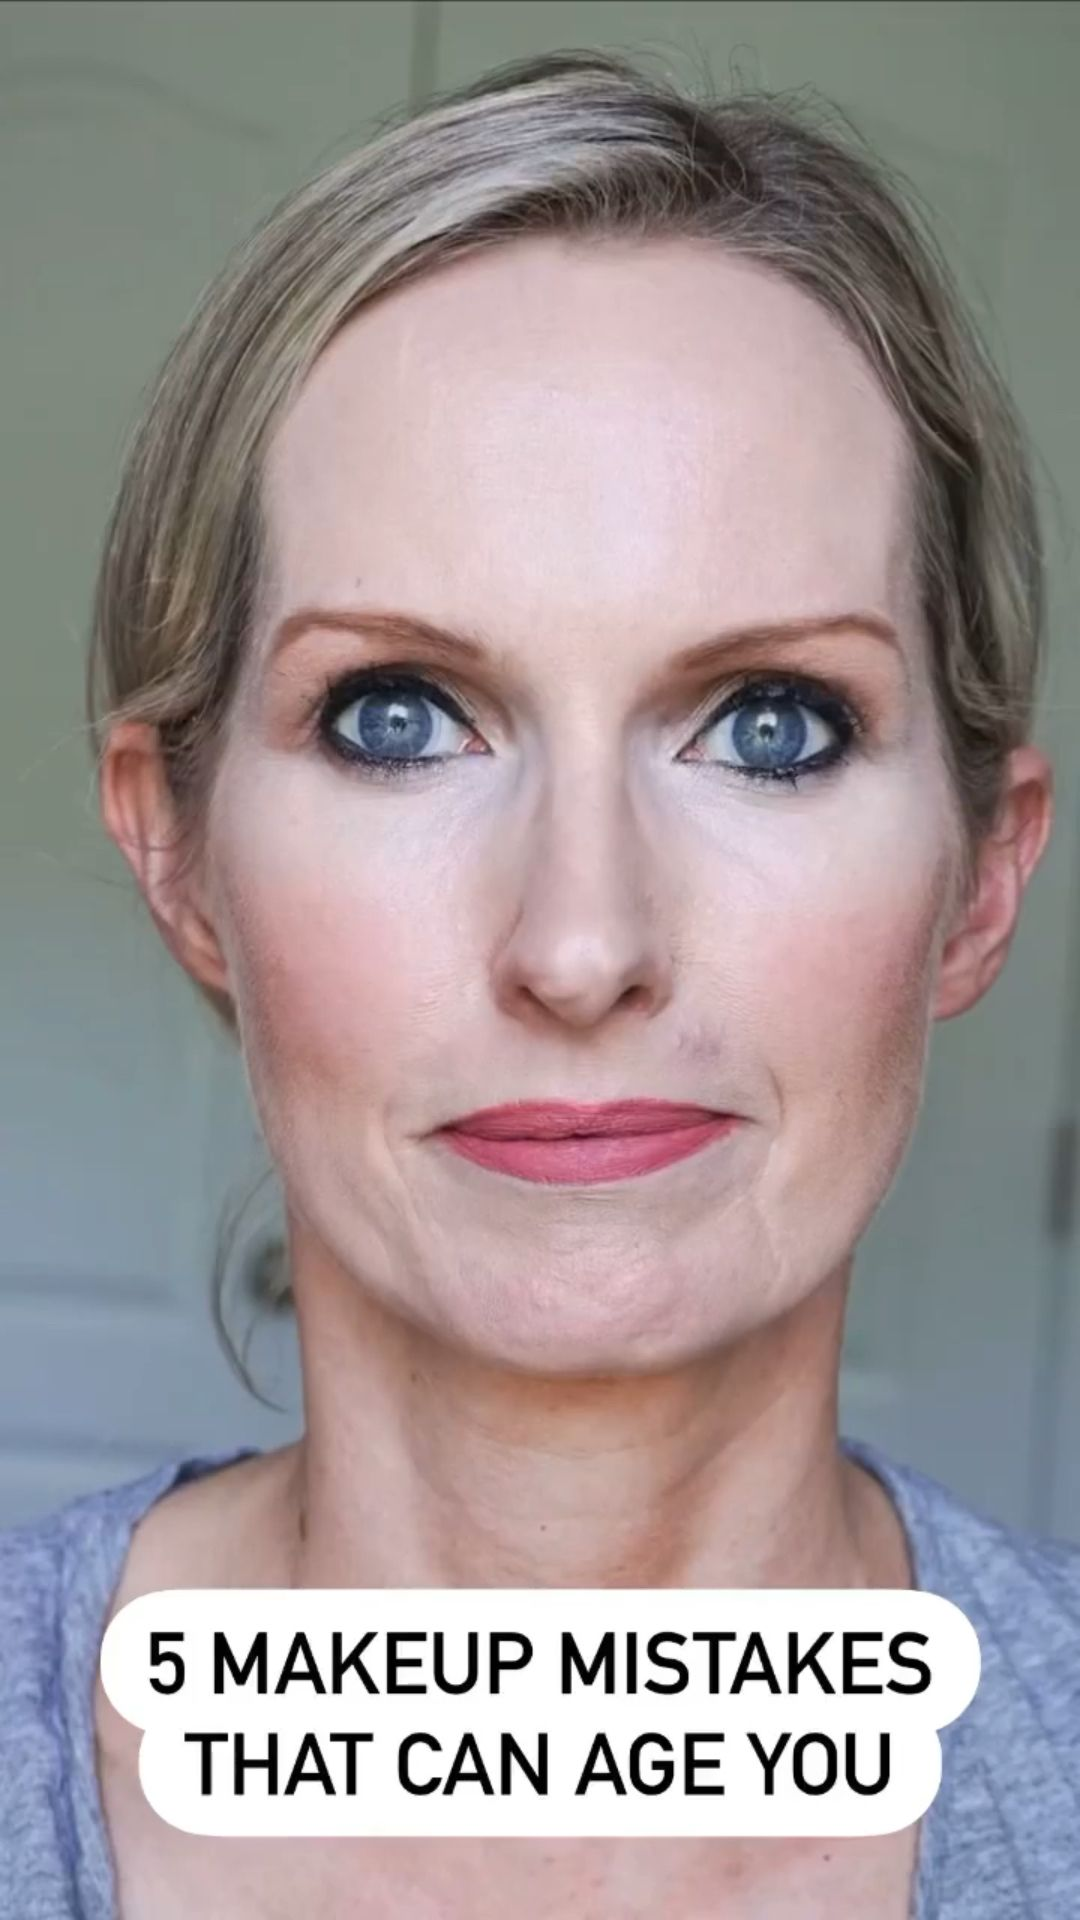 5 MAKEUP MISTAKES THAT CAN AGE YOU